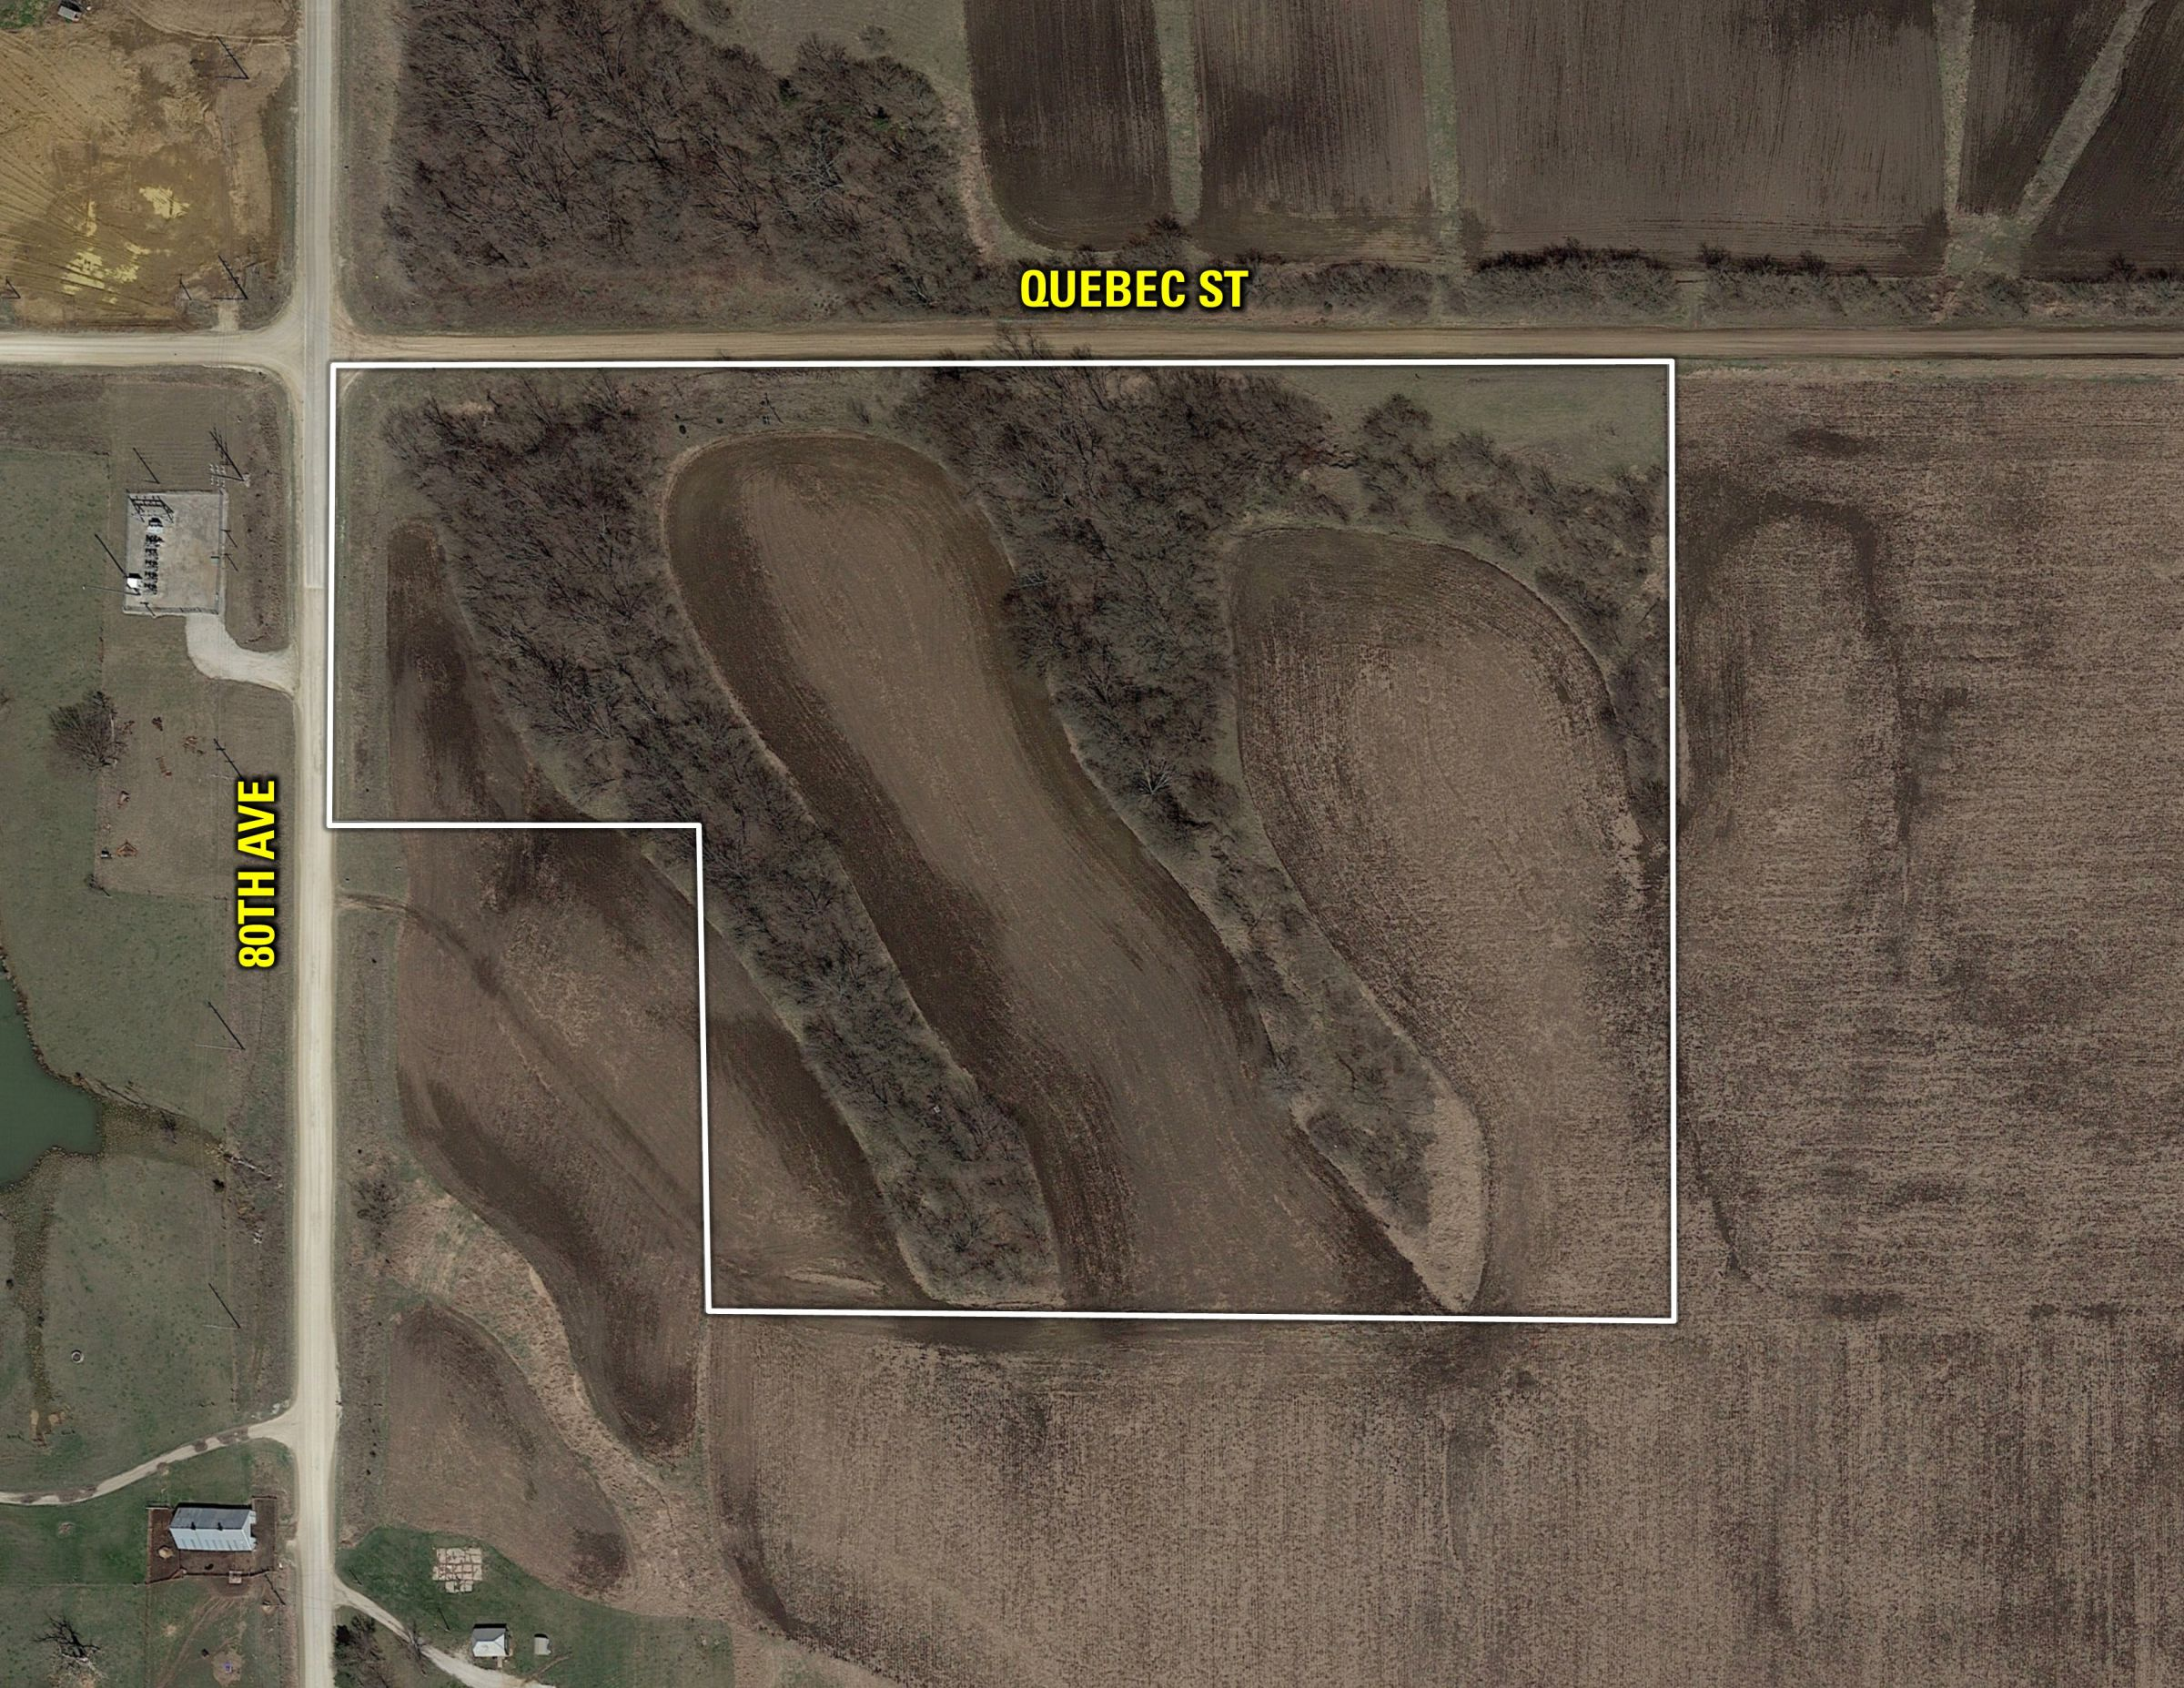 land-warren-county-iowa-19-acres-listing-number-15325-0-2021-01-18-023809.jpg